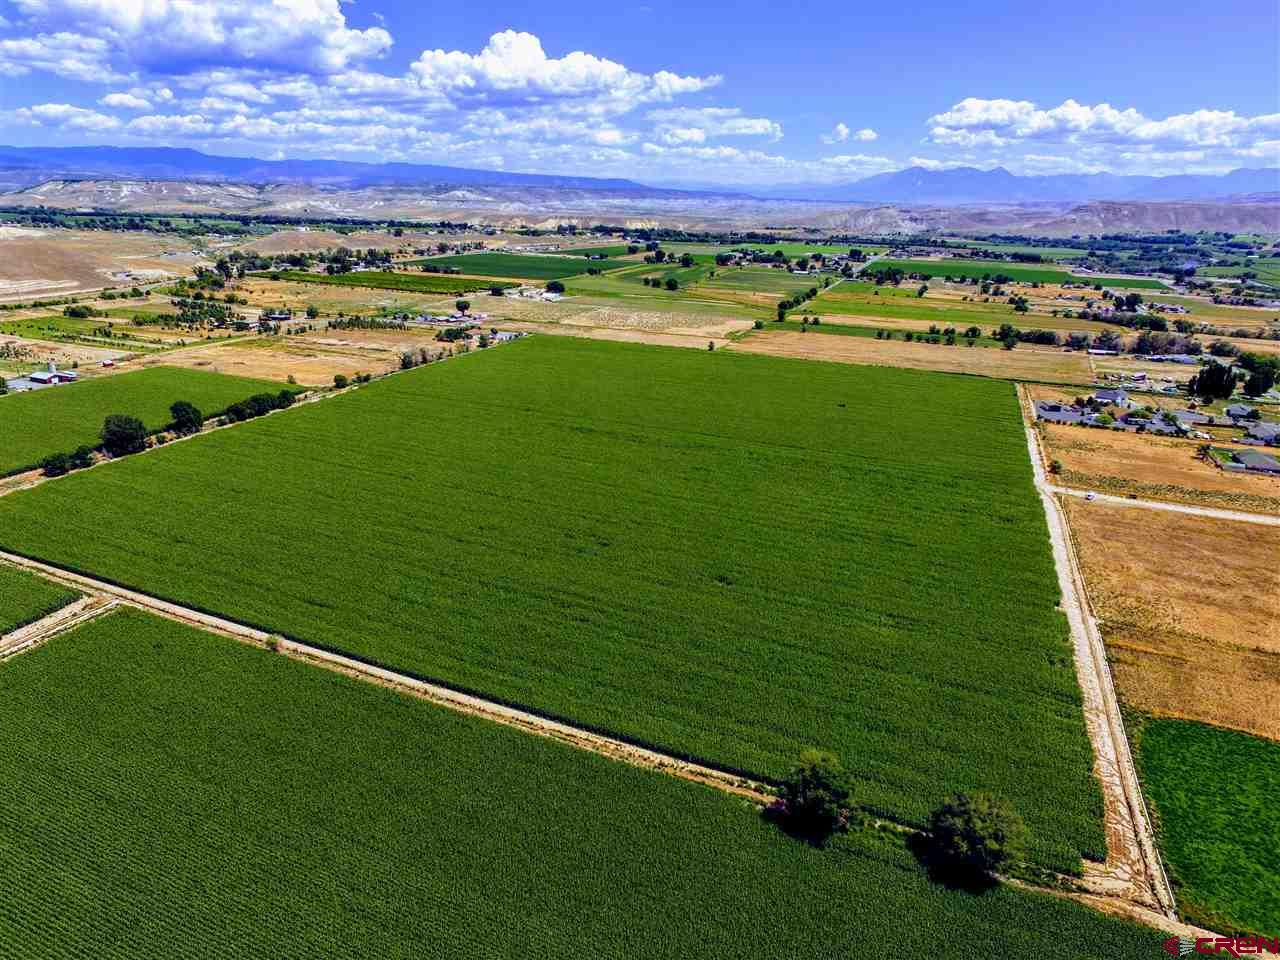 51+ ACRES OF PRIME IRRIGATED FARM GROUND! Tons of potential here for growing a number of different types of crops, including HEMP,HOPS, ORCHARD OR VINEYARD (currently in corn). Also has the excellent possibility of future Subdivision Development in an area that already has some very attractive Country Subdivisions & Homes. Gorgeous Views of the San Juans & the West Elks. Includes 900' of Gated Pipe, 50 Shares of Butte Ditch w/allocated OCID Irrigation and an Installed Orchard City Domestic Water Tap. Come build your Dream Home, Farm, Orchard, Ranch or whatever you want. Property is fenced on West & North Side & partial on South Side. There is an irrigation ditch that borders the East Side w/fencing along the other side of the ditch. Owner currently has an agreement with a tenant that irrigates & farms the land, so any growing crops at the time of sale would belong to the tenant, and new owner must honor the current lease agreement for the current season (a copy of the lease would be provided to a serious potential buyer. (Note: Any Subdivision Development of the land would be dependent on the availability of additional Orchard City Domestic Water Taps. Taps are currently available, however, Buyers should verify for themselves.)